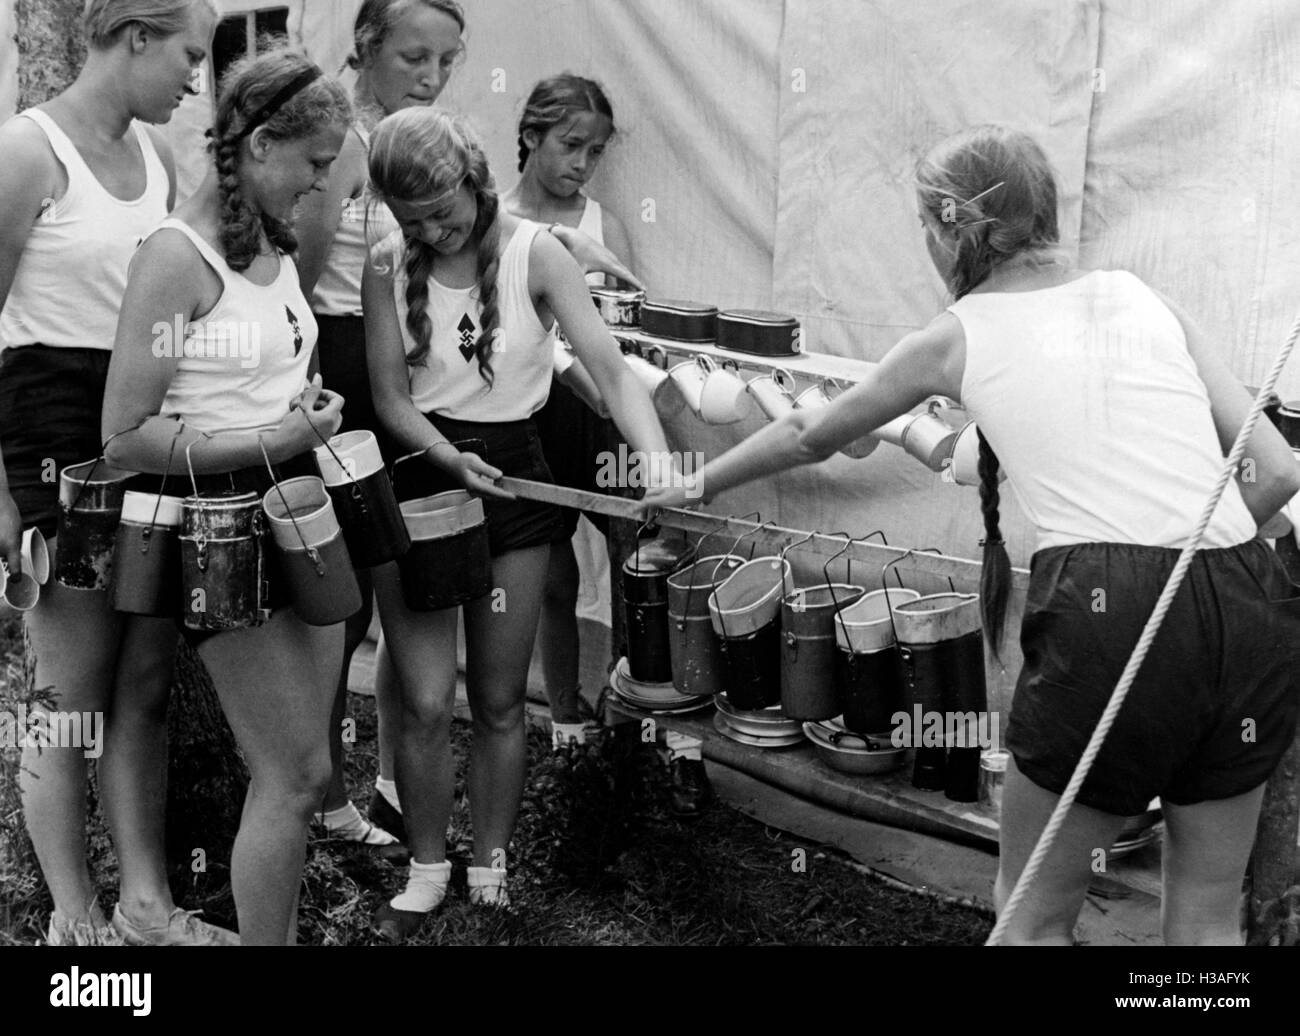 bdm camp 1937 stock photo 122548599 alamy